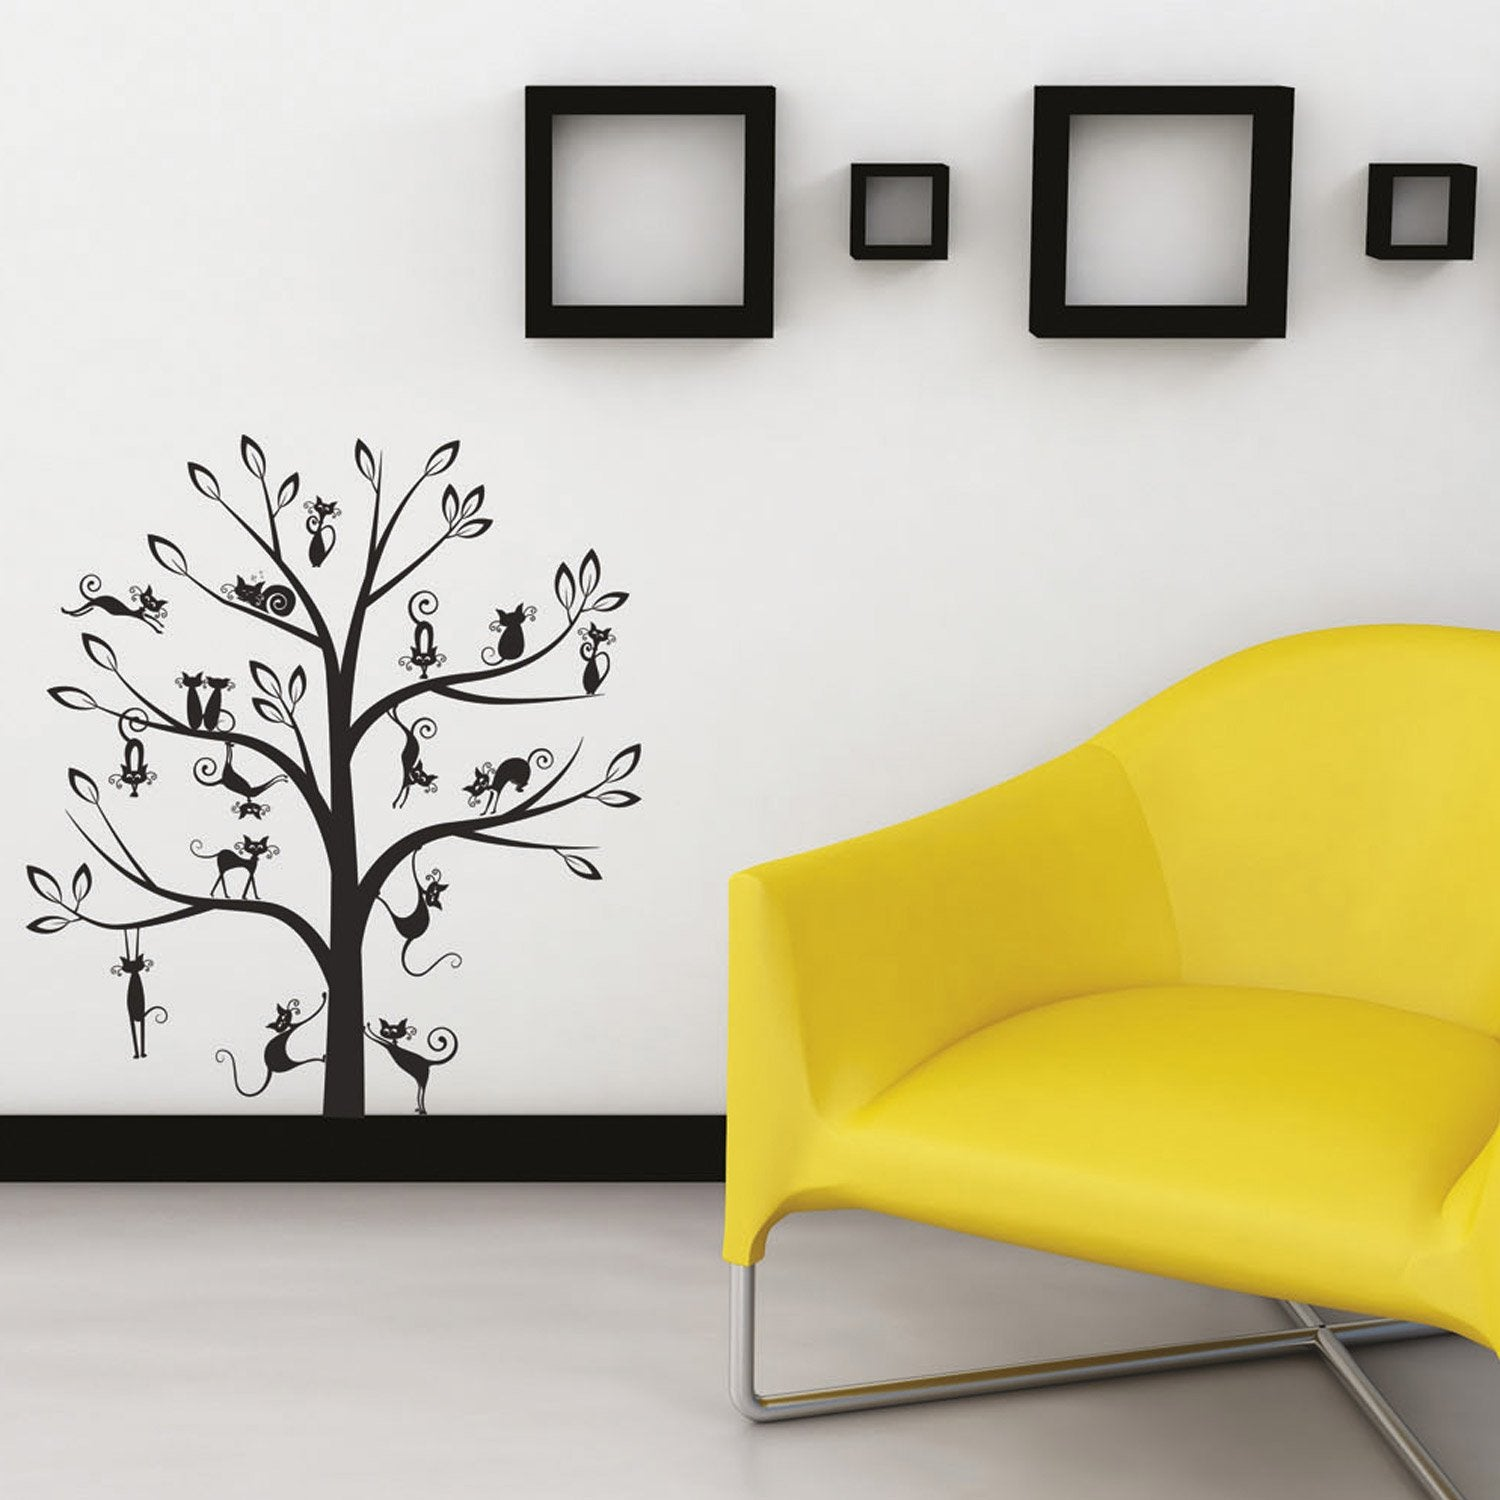 sticker arbre de chats 50 x 70 cm leroy merlin. Black Bedroom Furniture Sets. Home Design Ideas